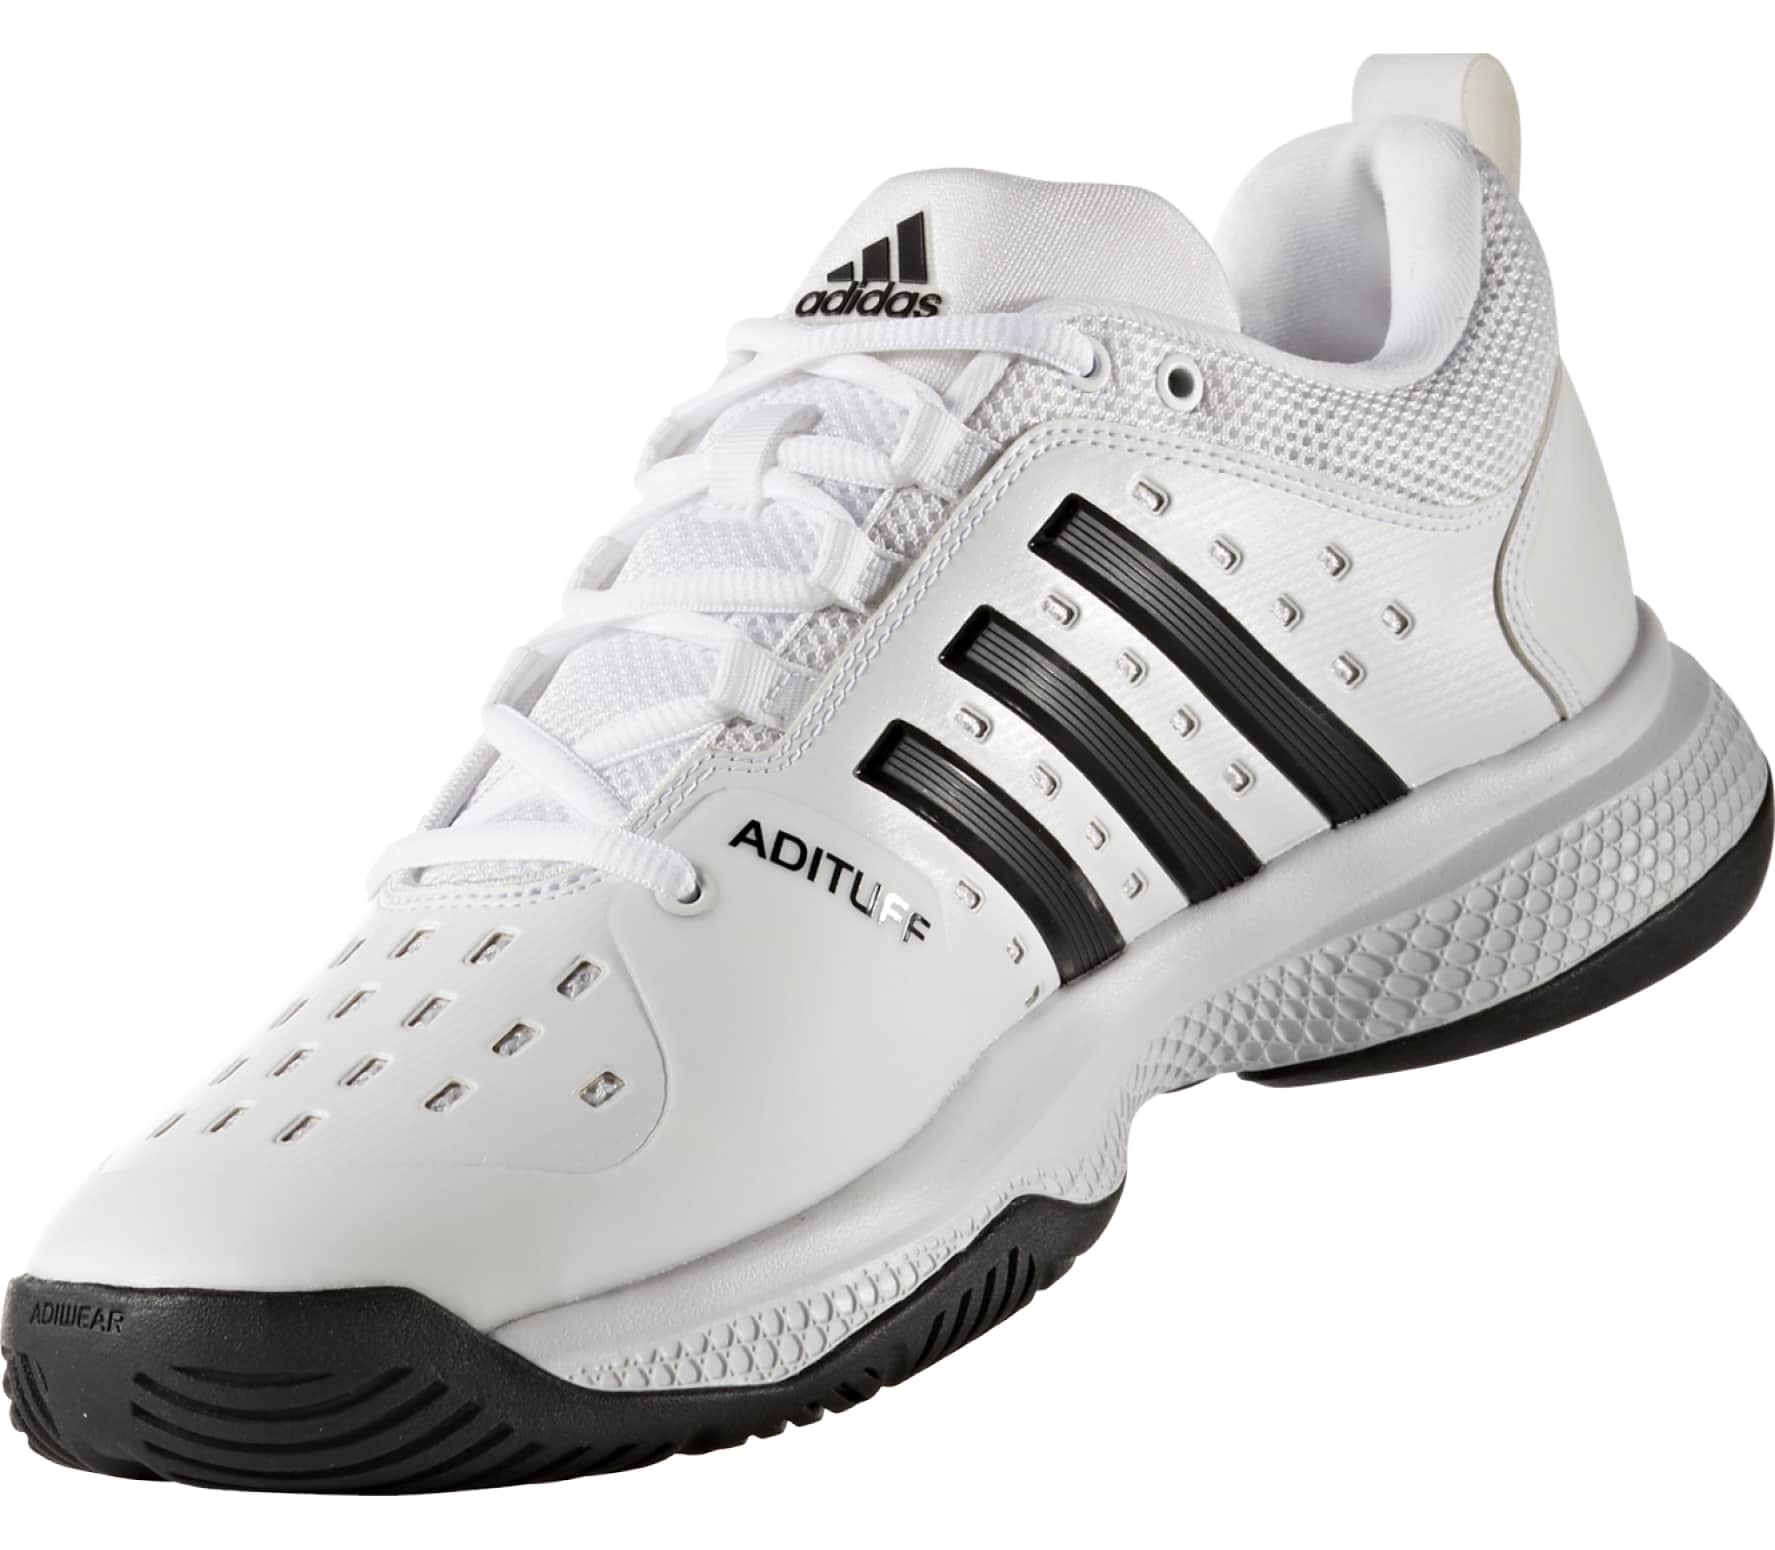 new product e28e8 b1411 Adidas - Barricade Classic Bounce Synthetic mens tennis shoes (whiteblack)